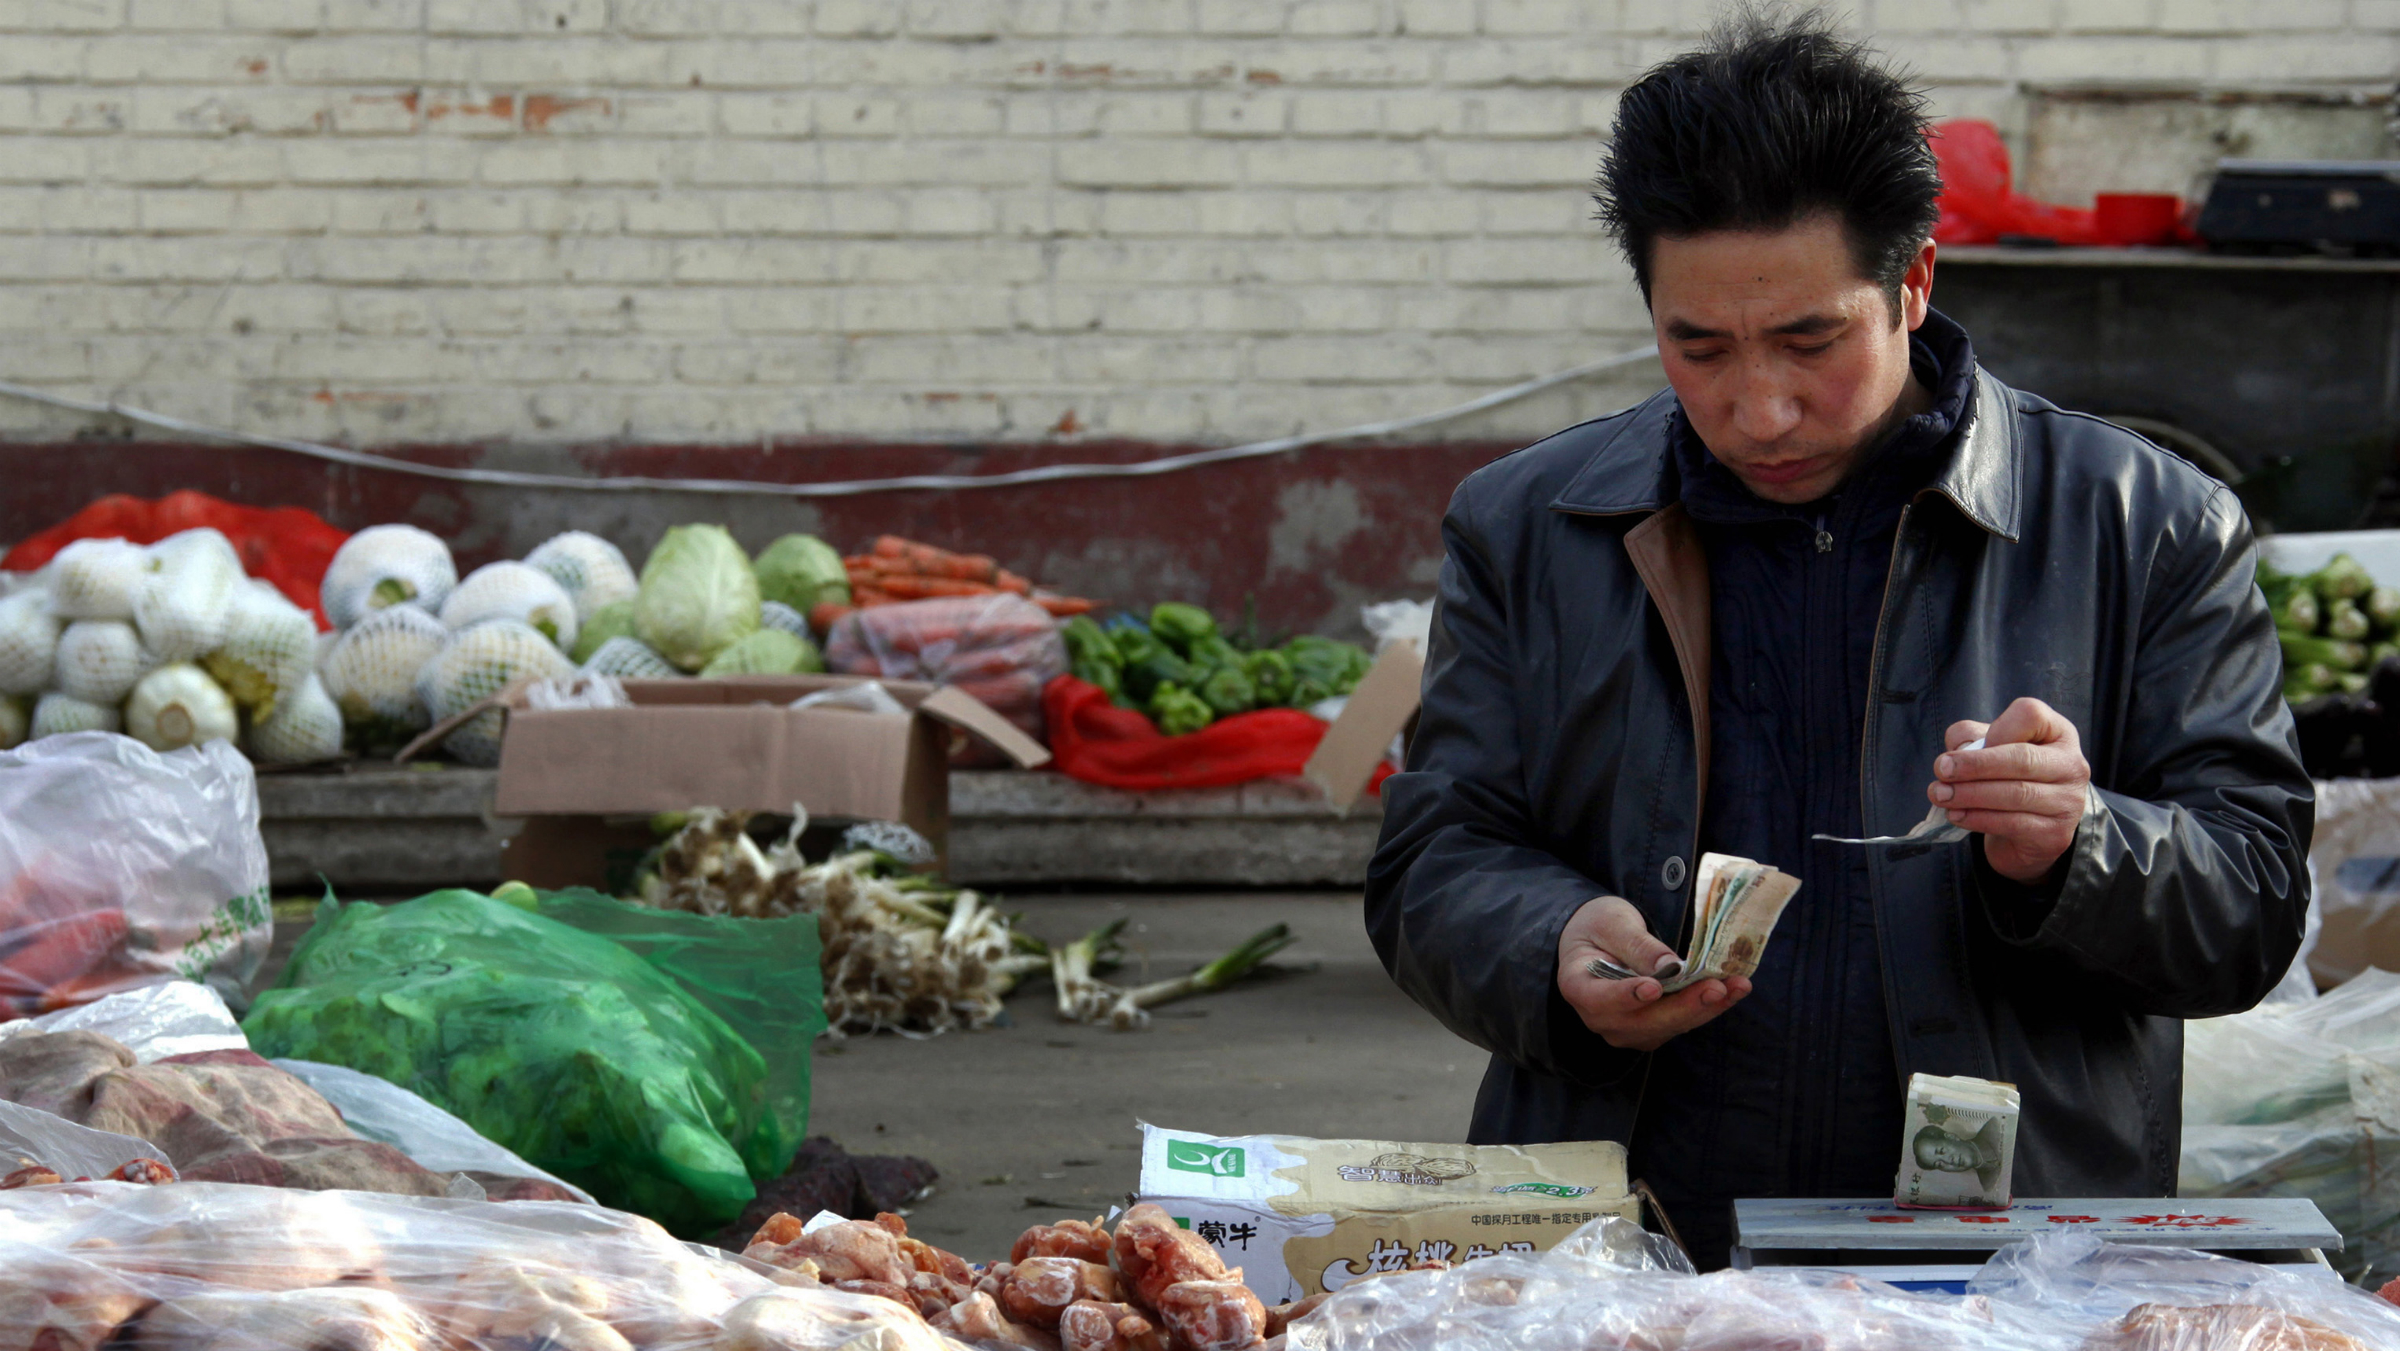 Fruit and vegetables can be seen behind a man selling pork as he checks his money at a small roadside market in central Beijing March 1, 2011. China's annual consumer price index (CPI) may reach 4.5 percent in the first quarter and peak this year in the second quarter, the official Shanghai Securities News on Monday quoted a research report as saying. In one sign of the accumulating pressures, core inflation, stripped of volatile food prices, jumped to 2.6 percent year on year, the highest in at least a decade, from 2.1 percent a month earlier. REUTERS/David Gray